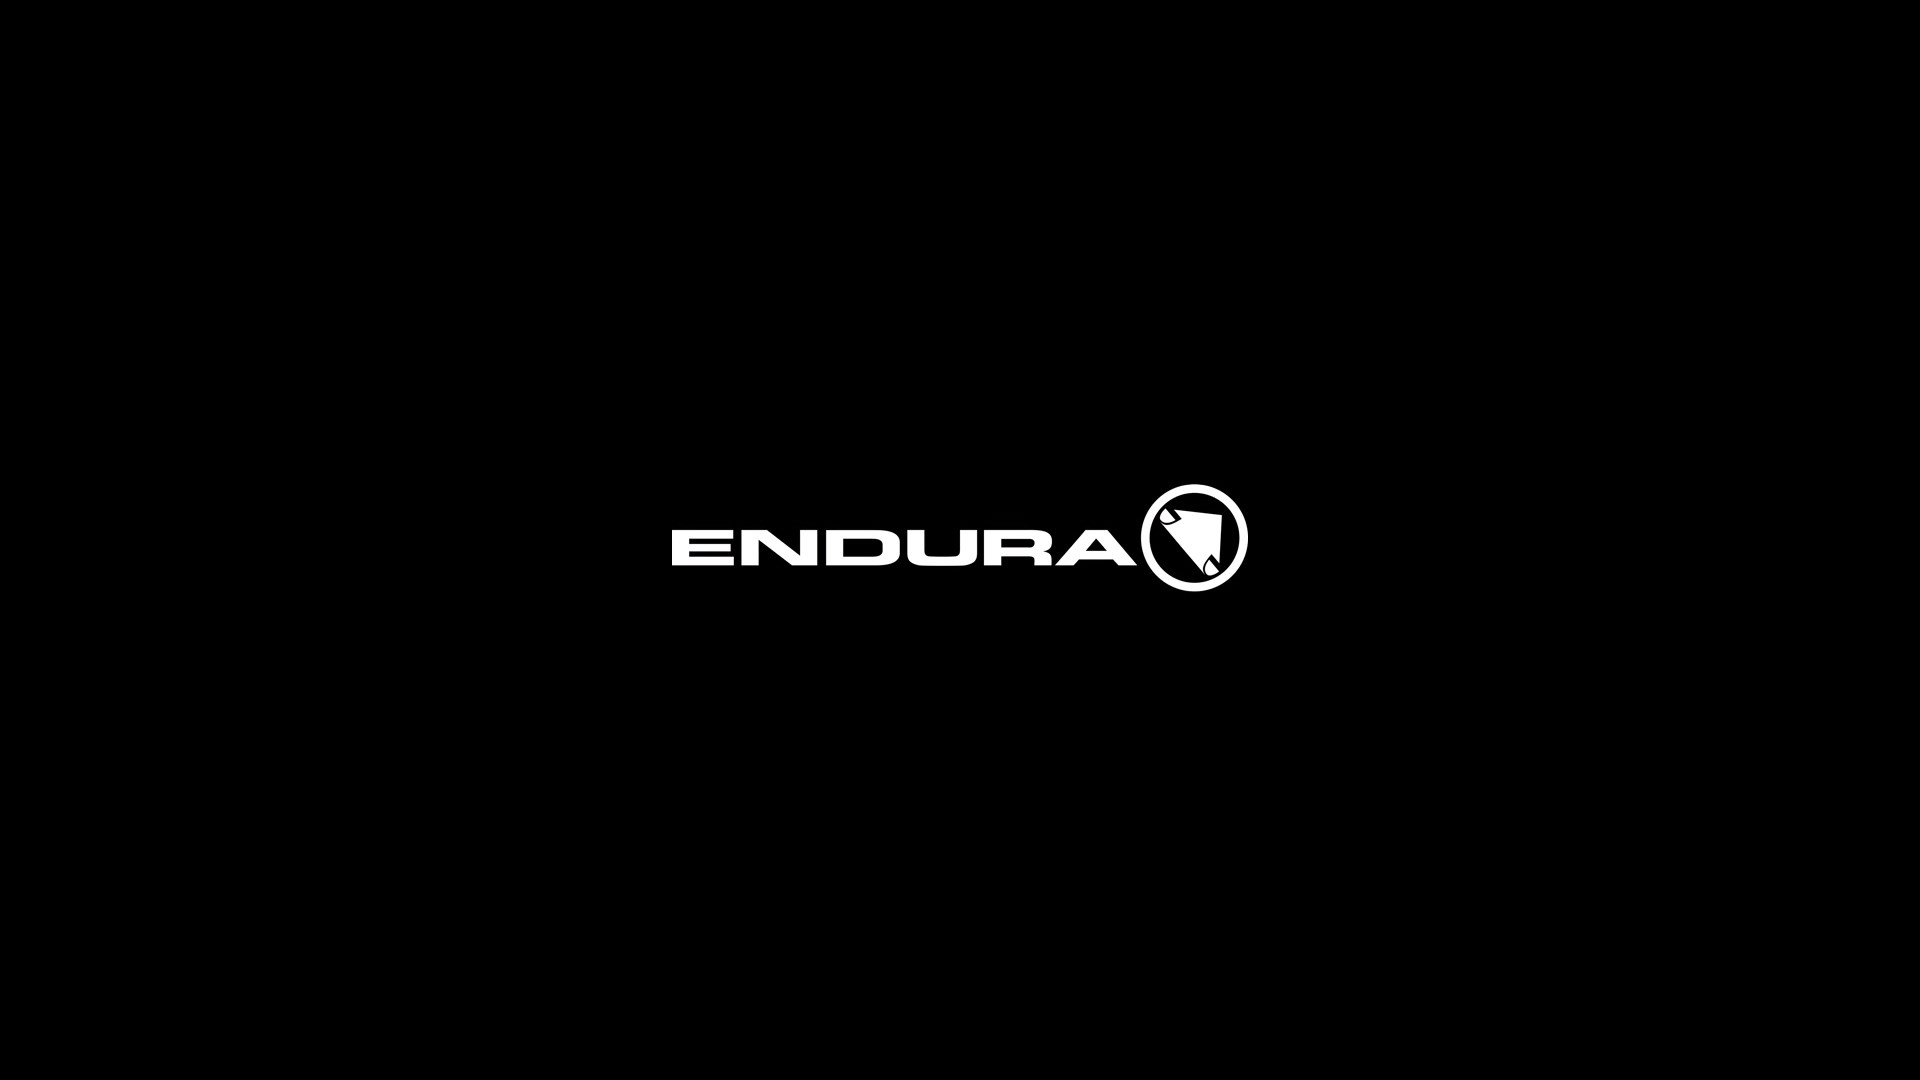 Endura Windchill - Zip the cold out